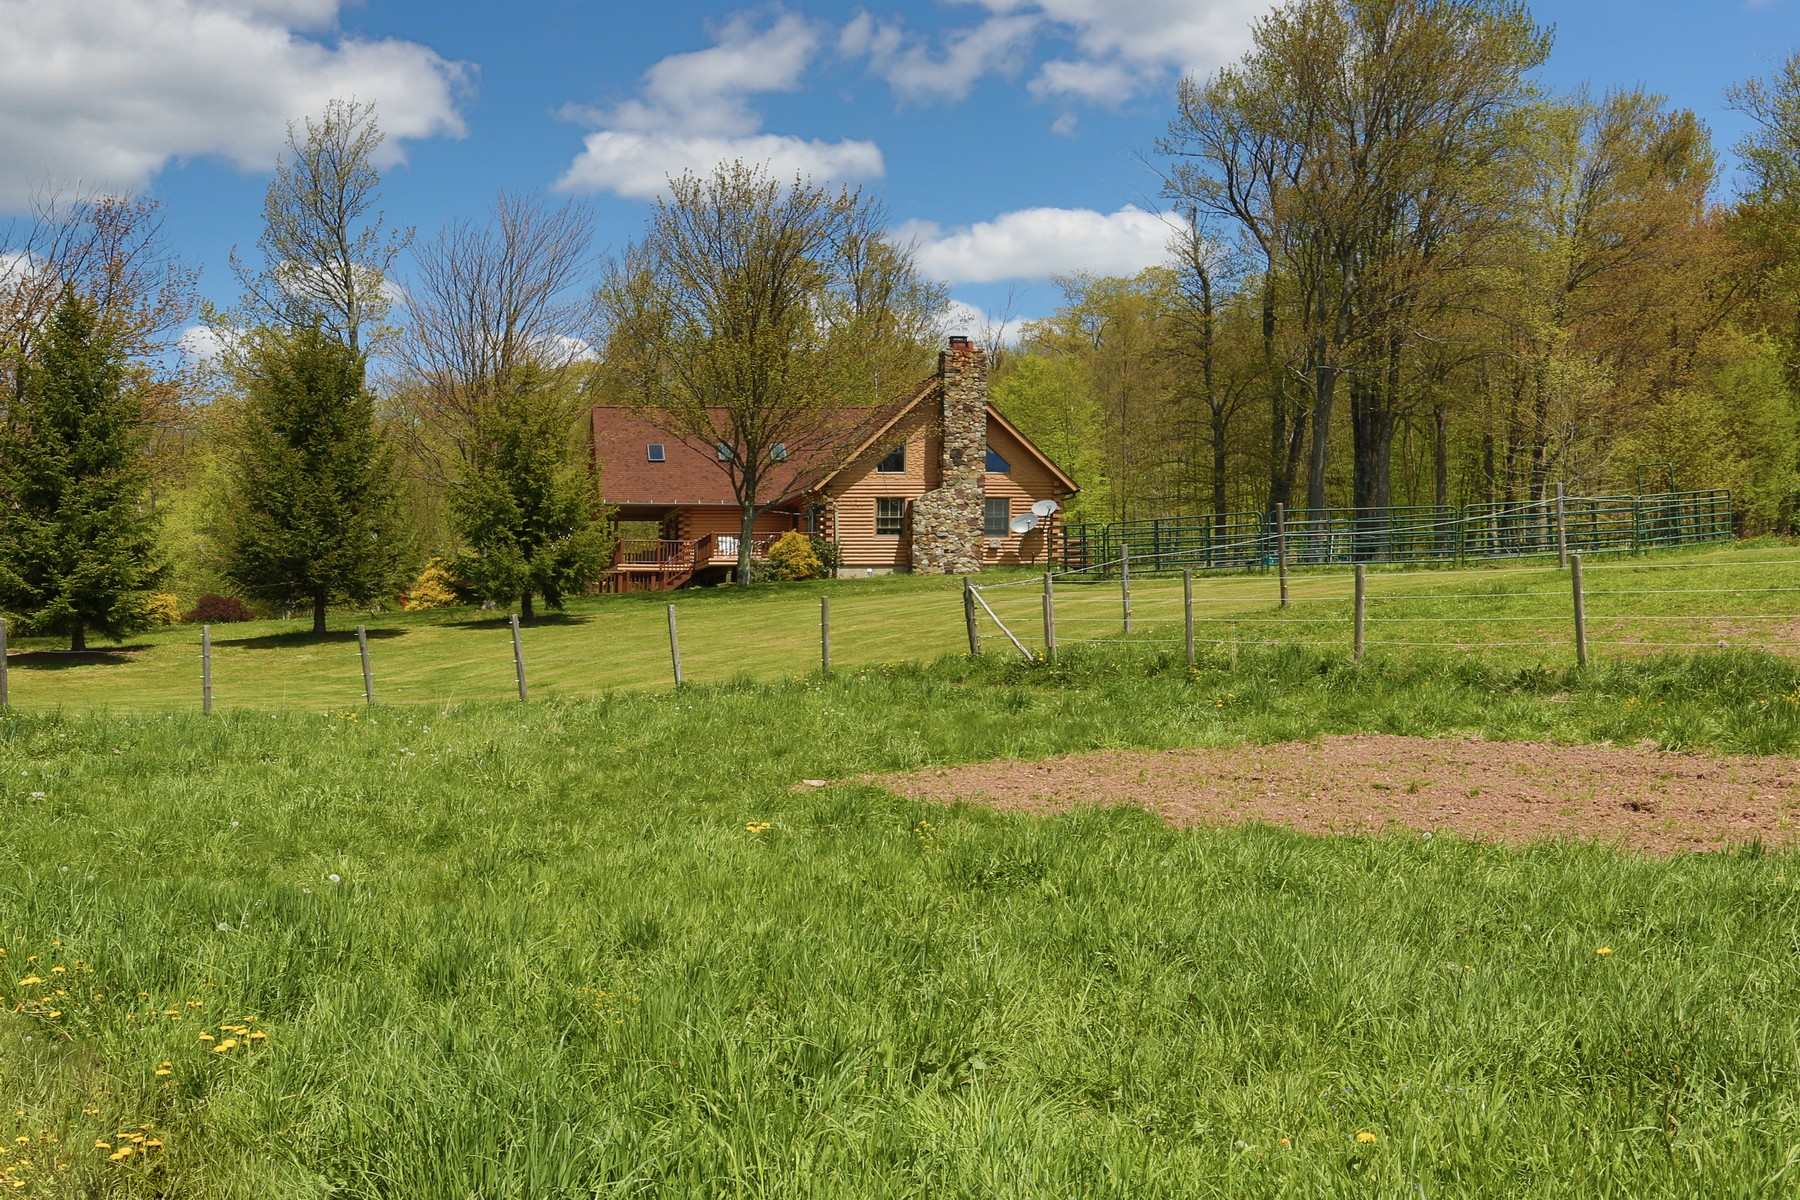 Additional photo for property listing at Secluded Gentleman's Farm 1206  Flax Island Rd Otego, Nueva York 13825 Estados Unidos